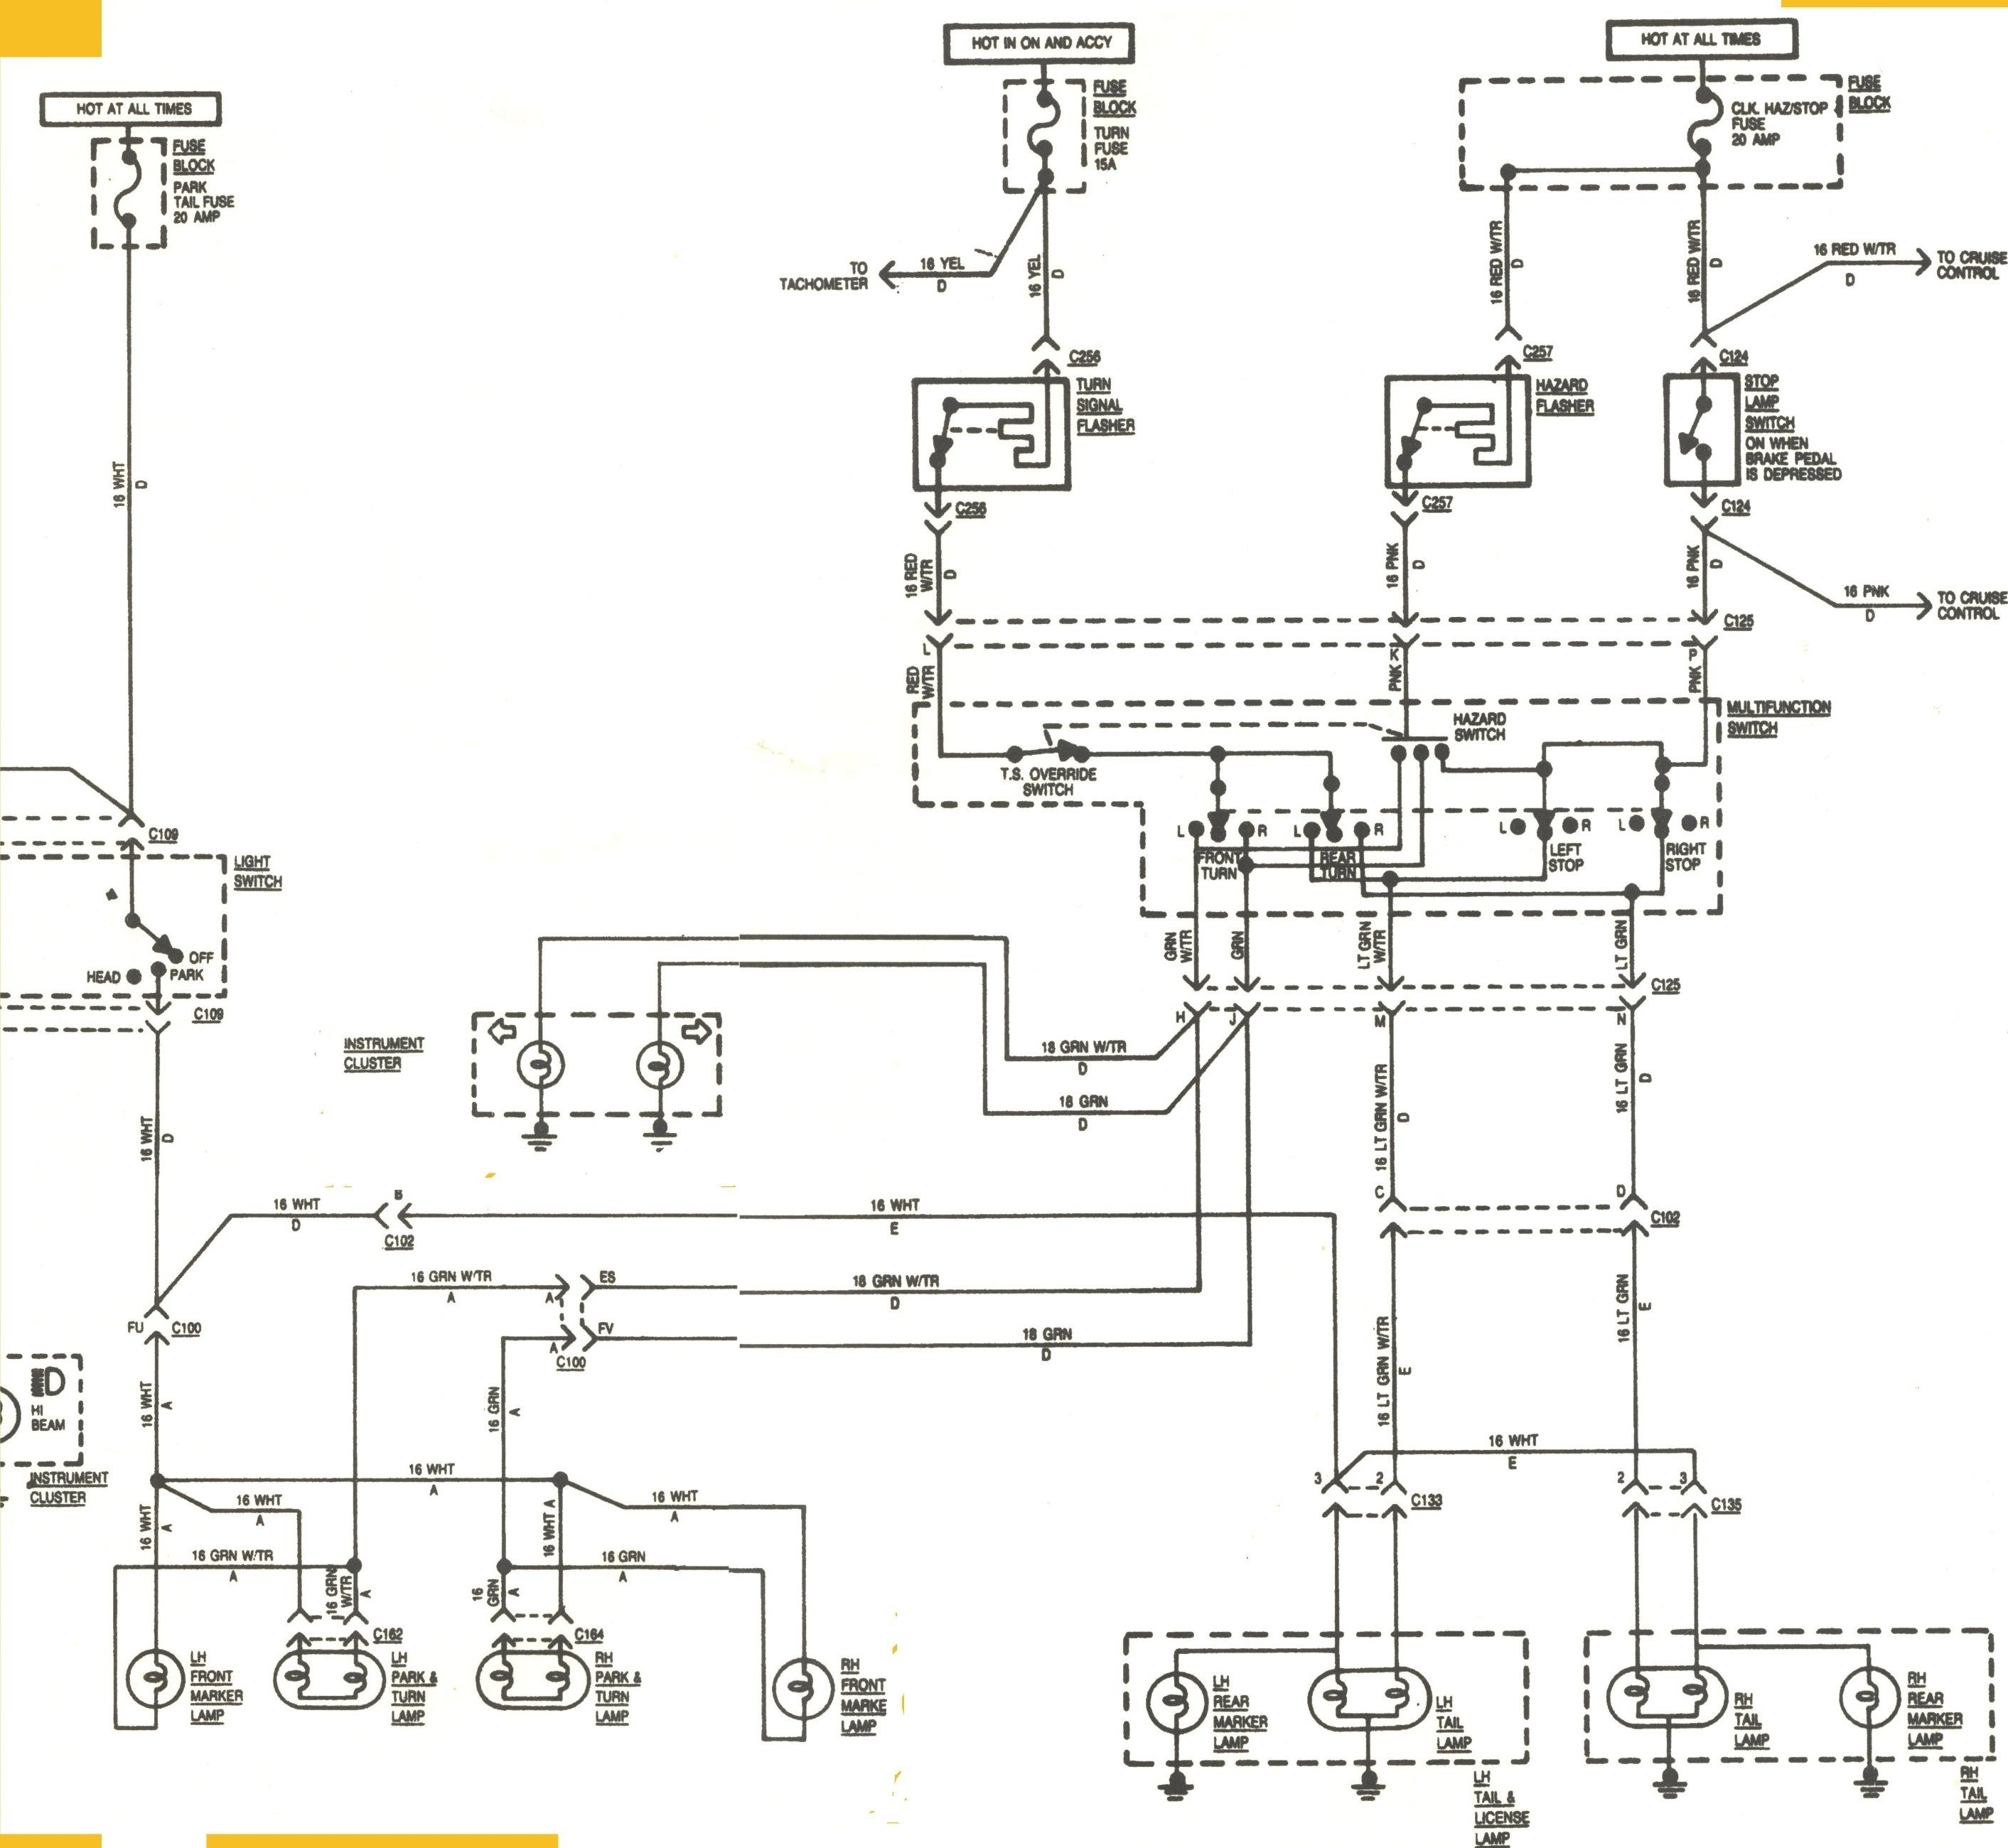 3DF0 Wiring Diagram 1999 Jeep Wran | Wiring ResourcesWiring Resources